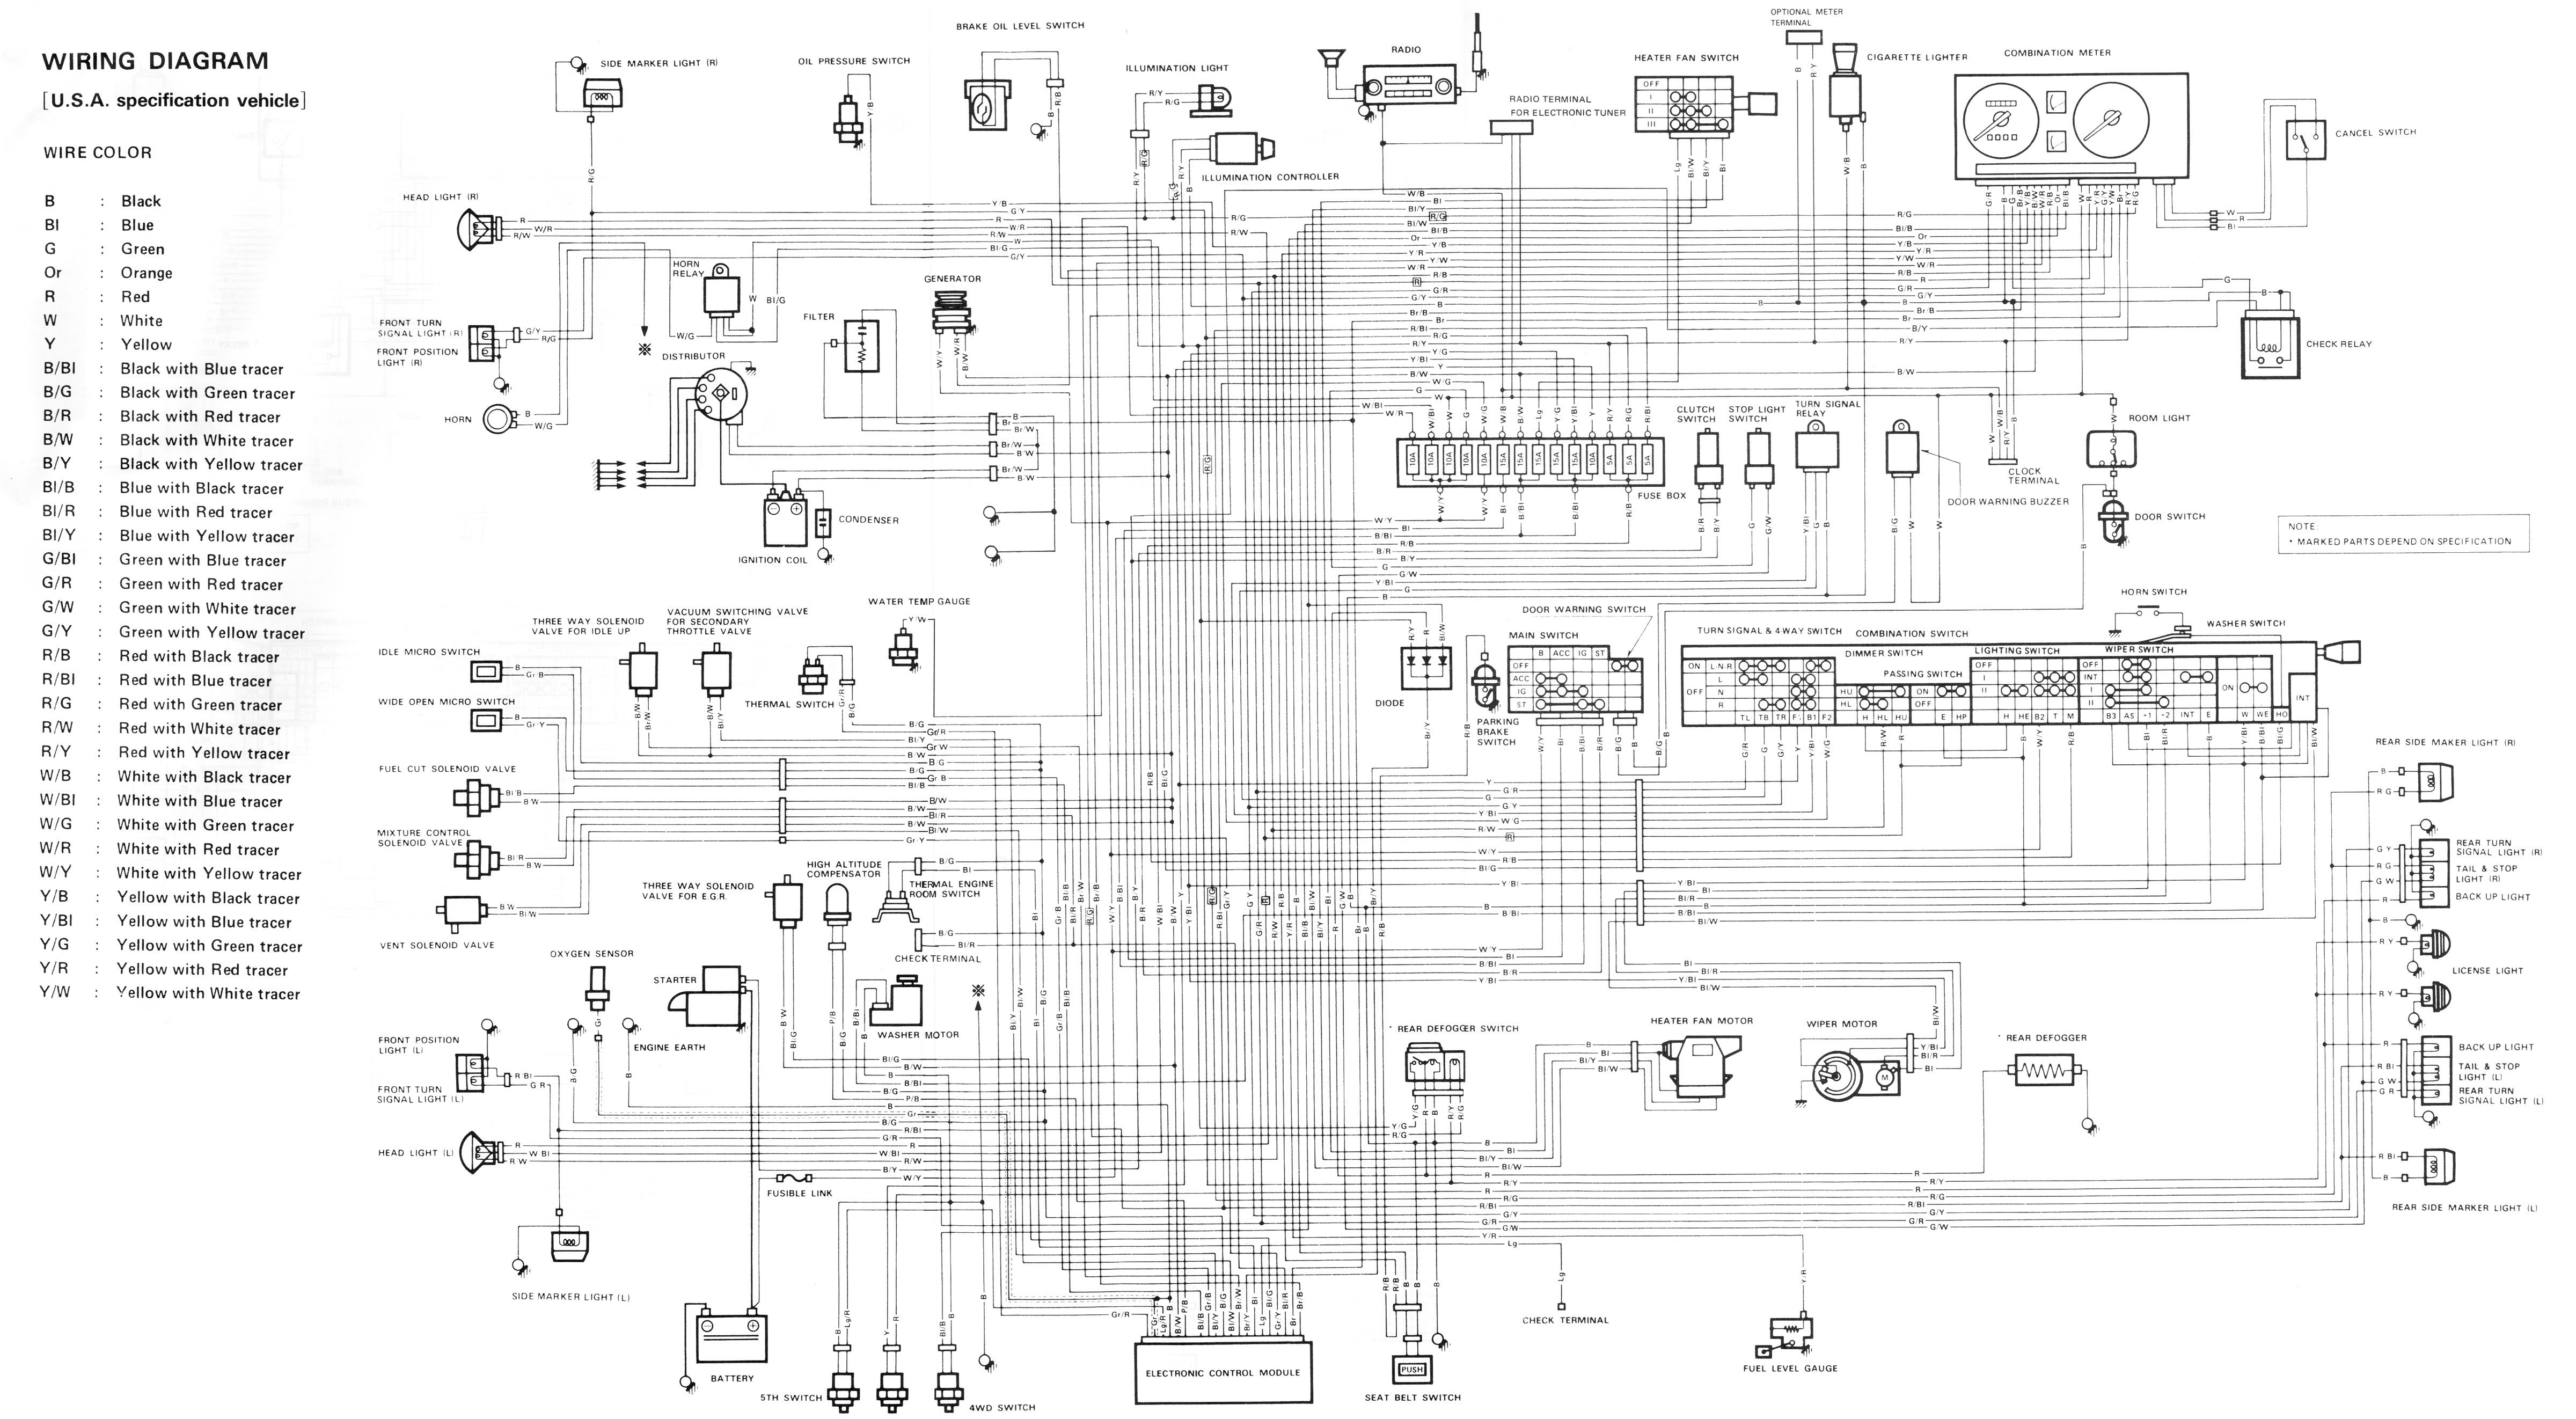 Diagram 1986 Suzuki Samurai Wiring Diagram Full Version Hd Quality Wiring Diagram Diagramplumber Momentidifesta It